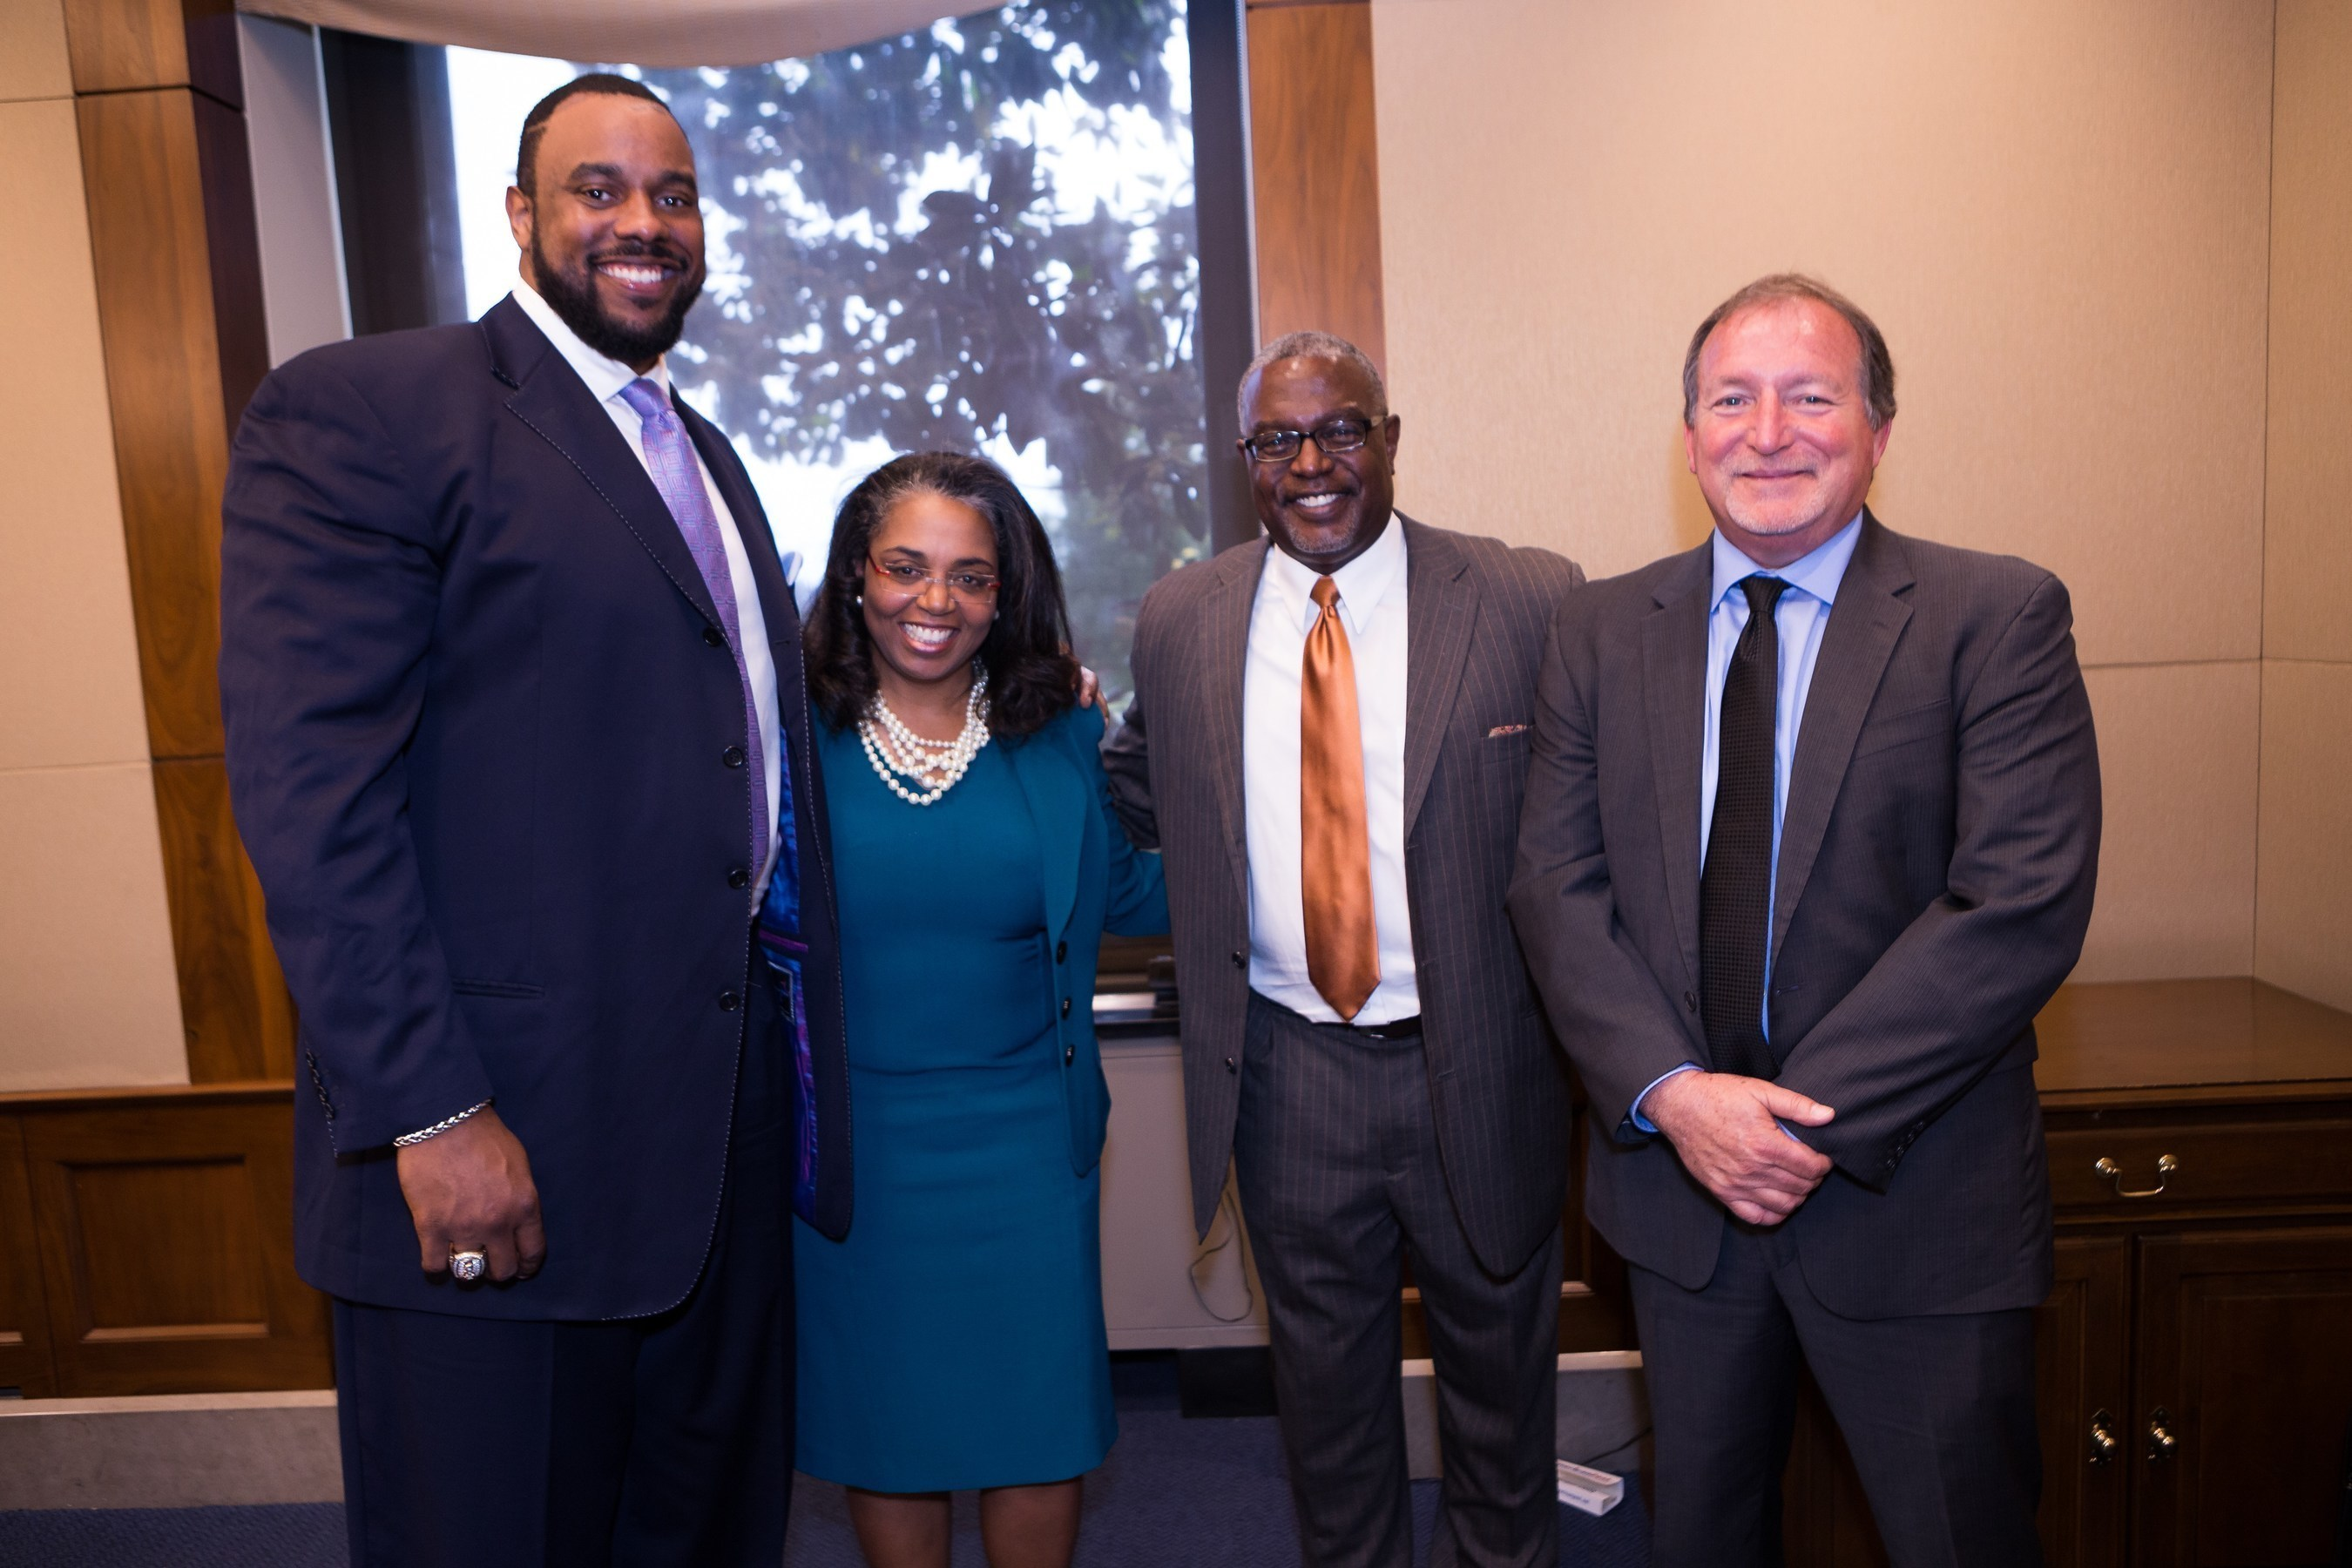 L to R: Jonathan Scott, Dr. Amy McMichael, Dr. Paul Wallace, and Randy Beranek, President and CEO, National Psoriasis Foundation at the Skin of Color Congressional Briefing